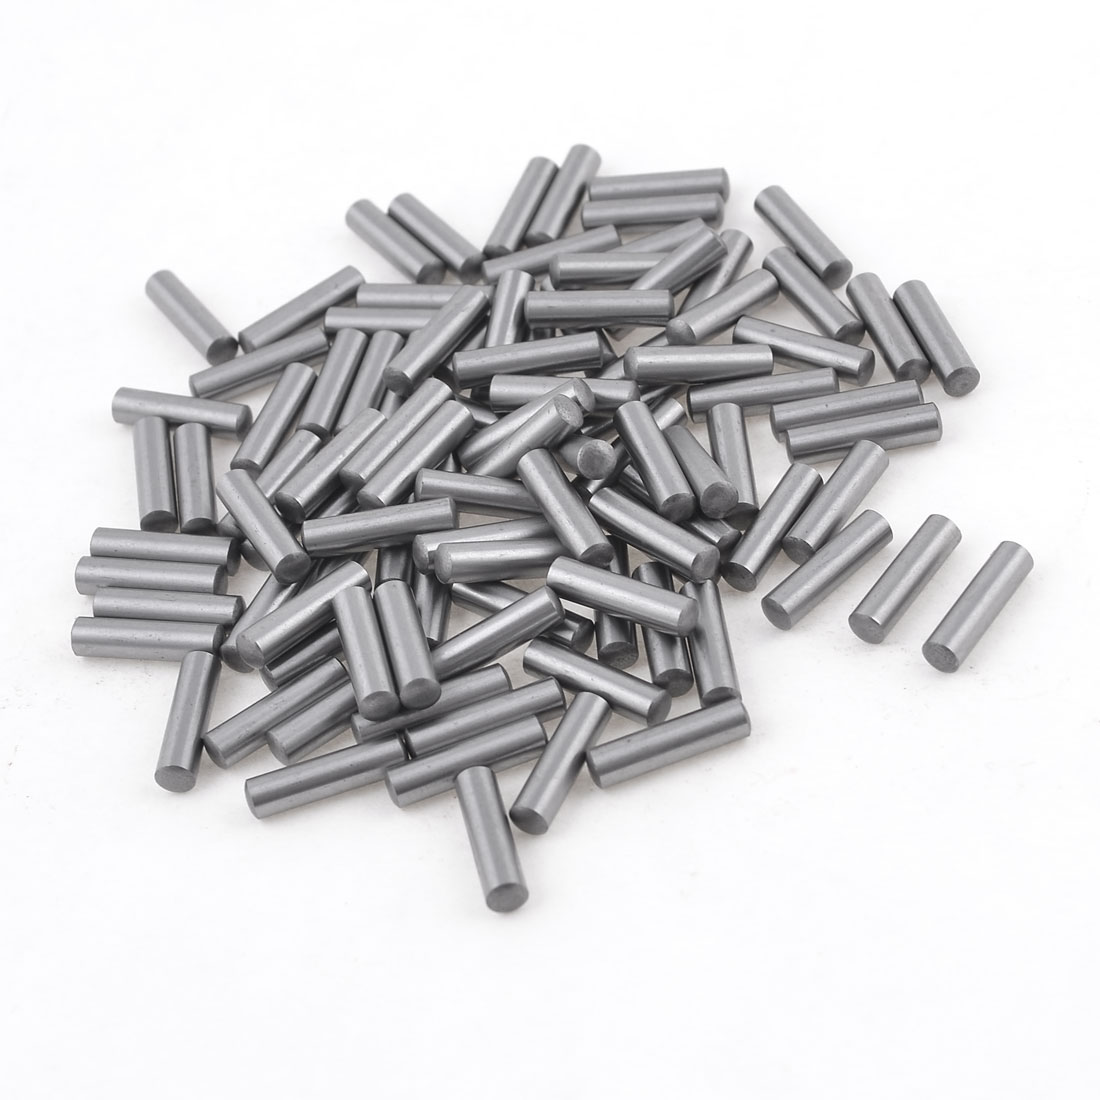 100 Pcs 3.4mm Diameter 15.8mm Length Cylinder Parallel Dowel Pins